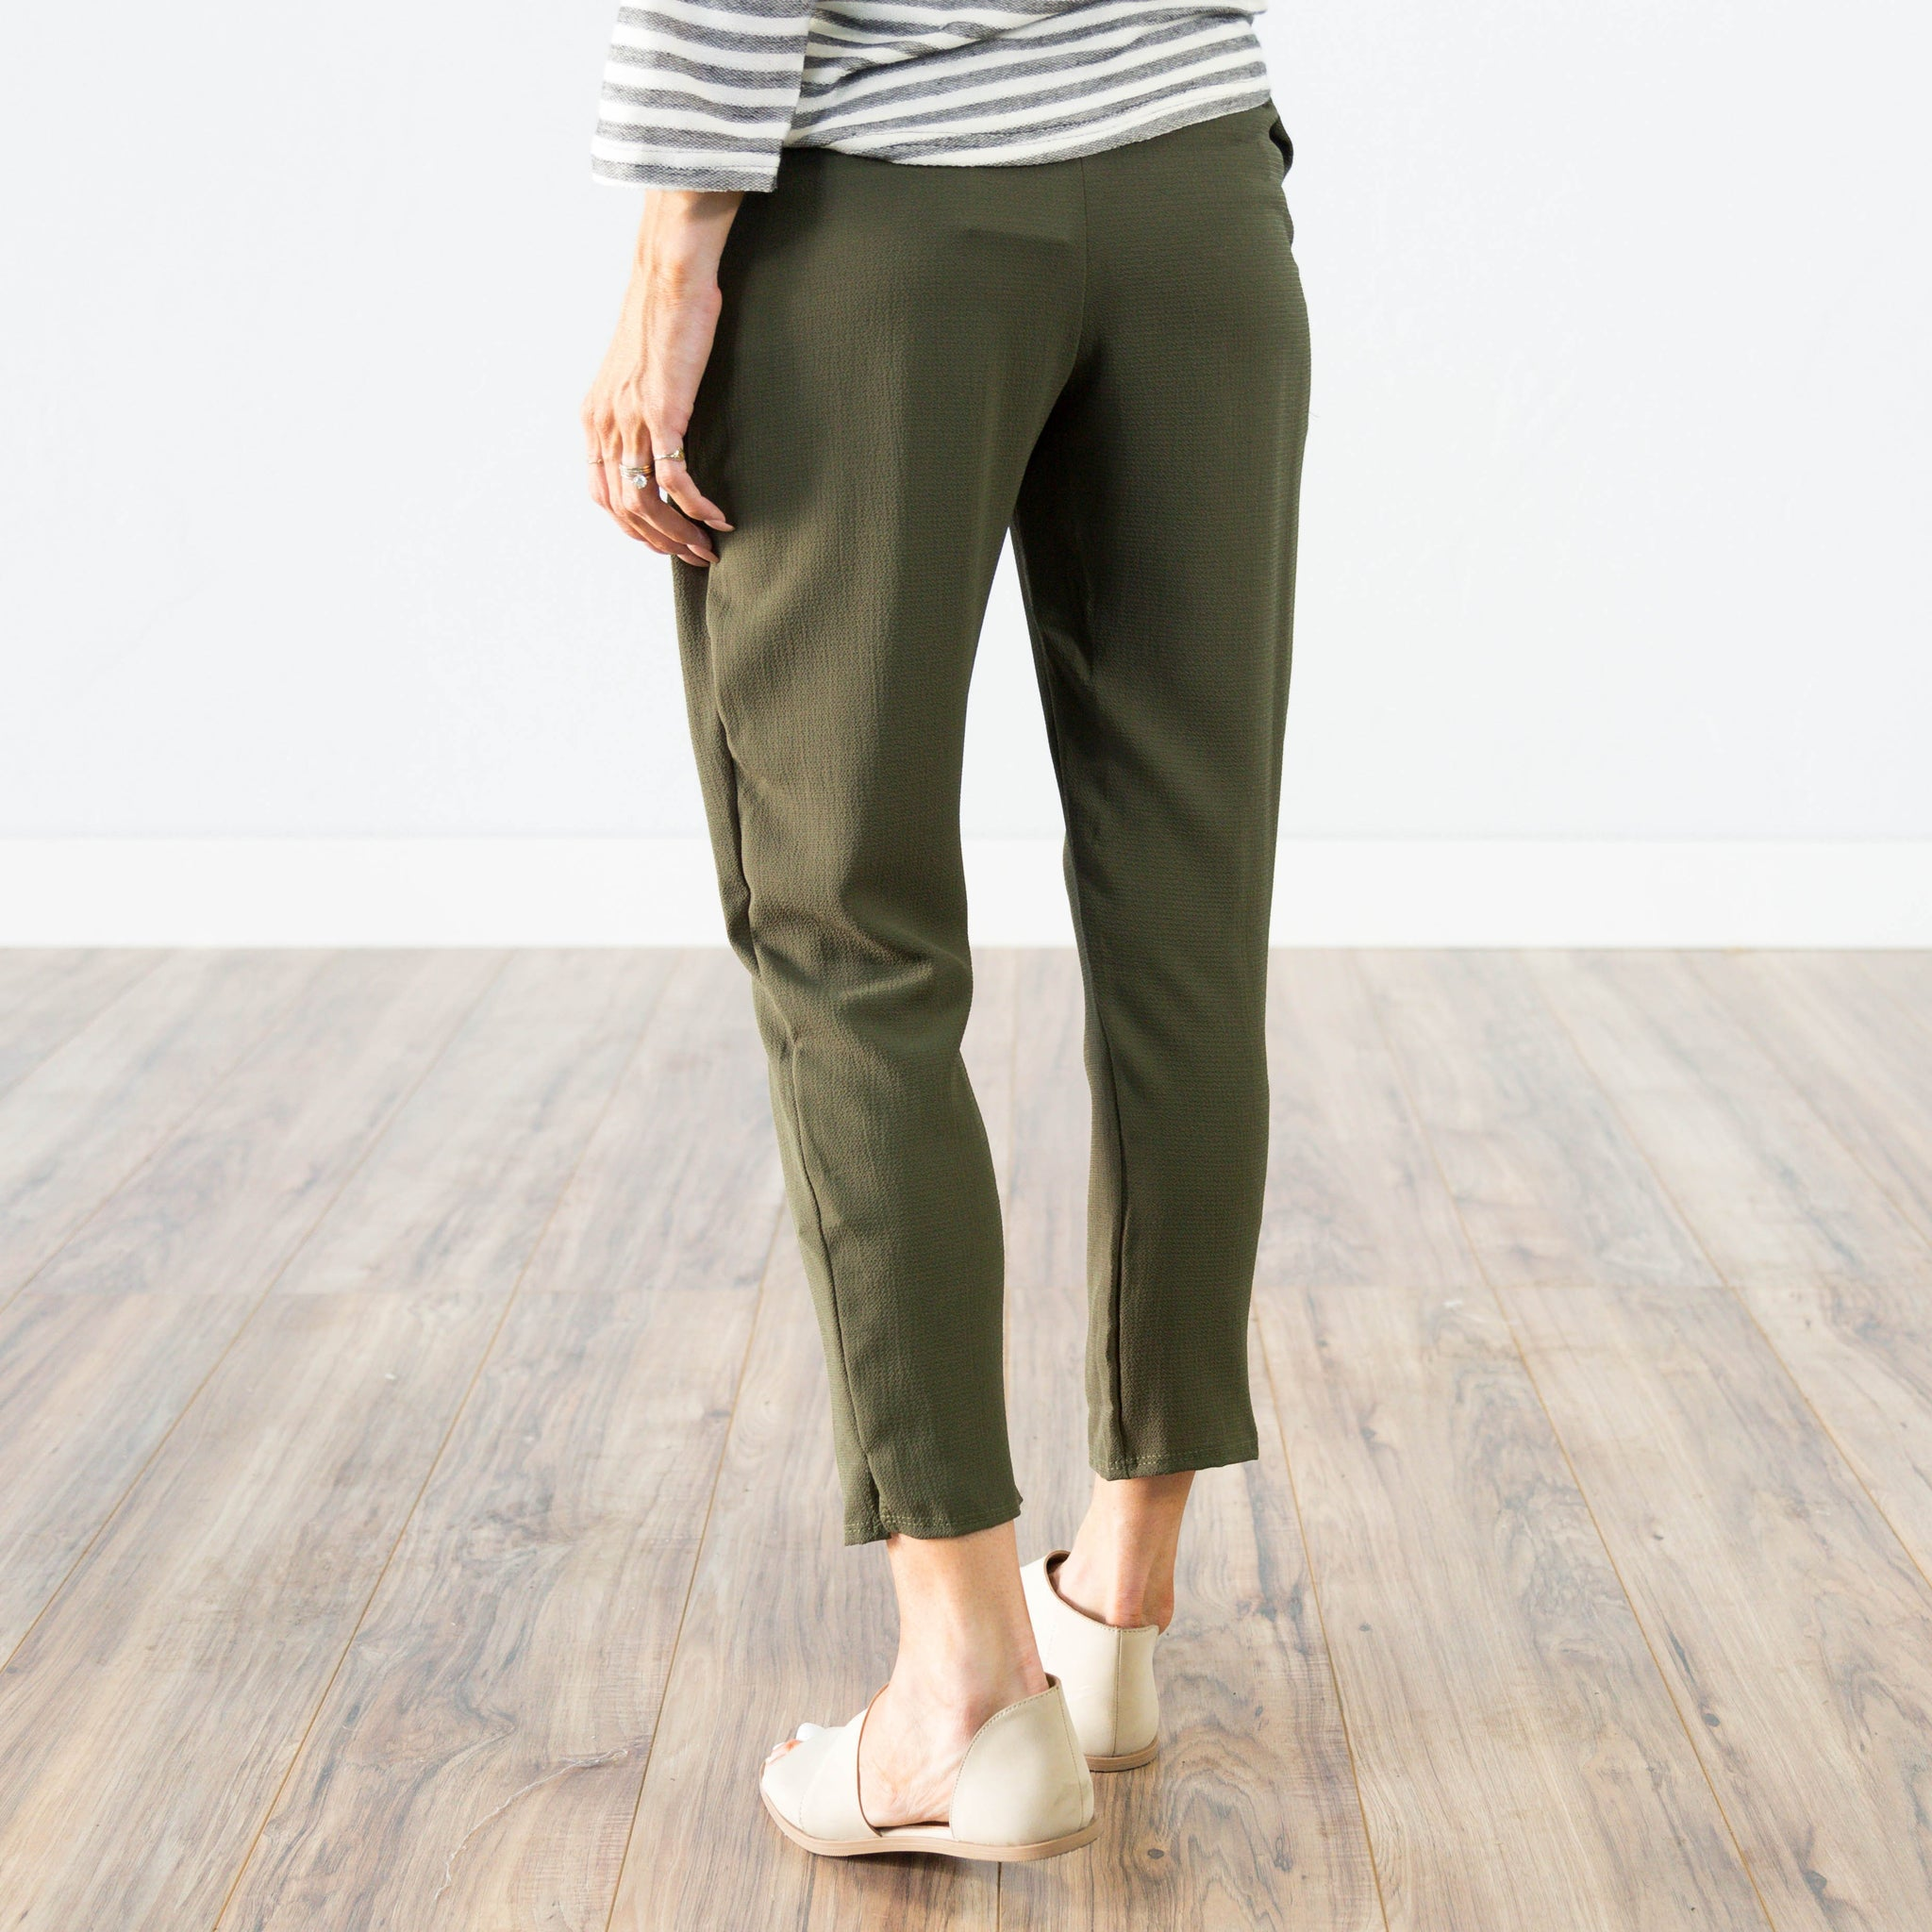 Lydia Pant in Olive